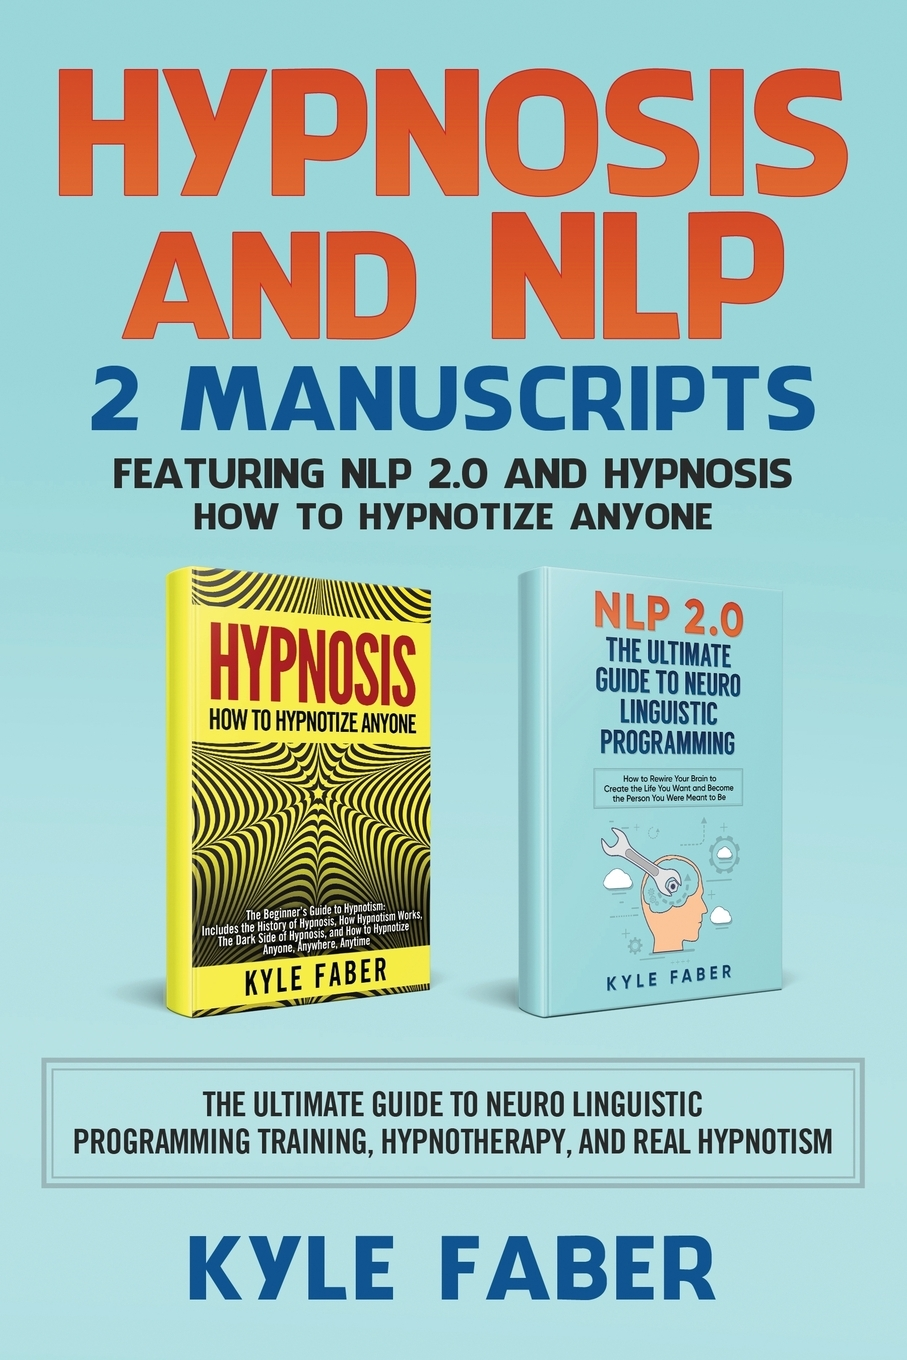 Hypnosis and NLP: 2 Manuscripts - Featuring NLP 2.0 and ...